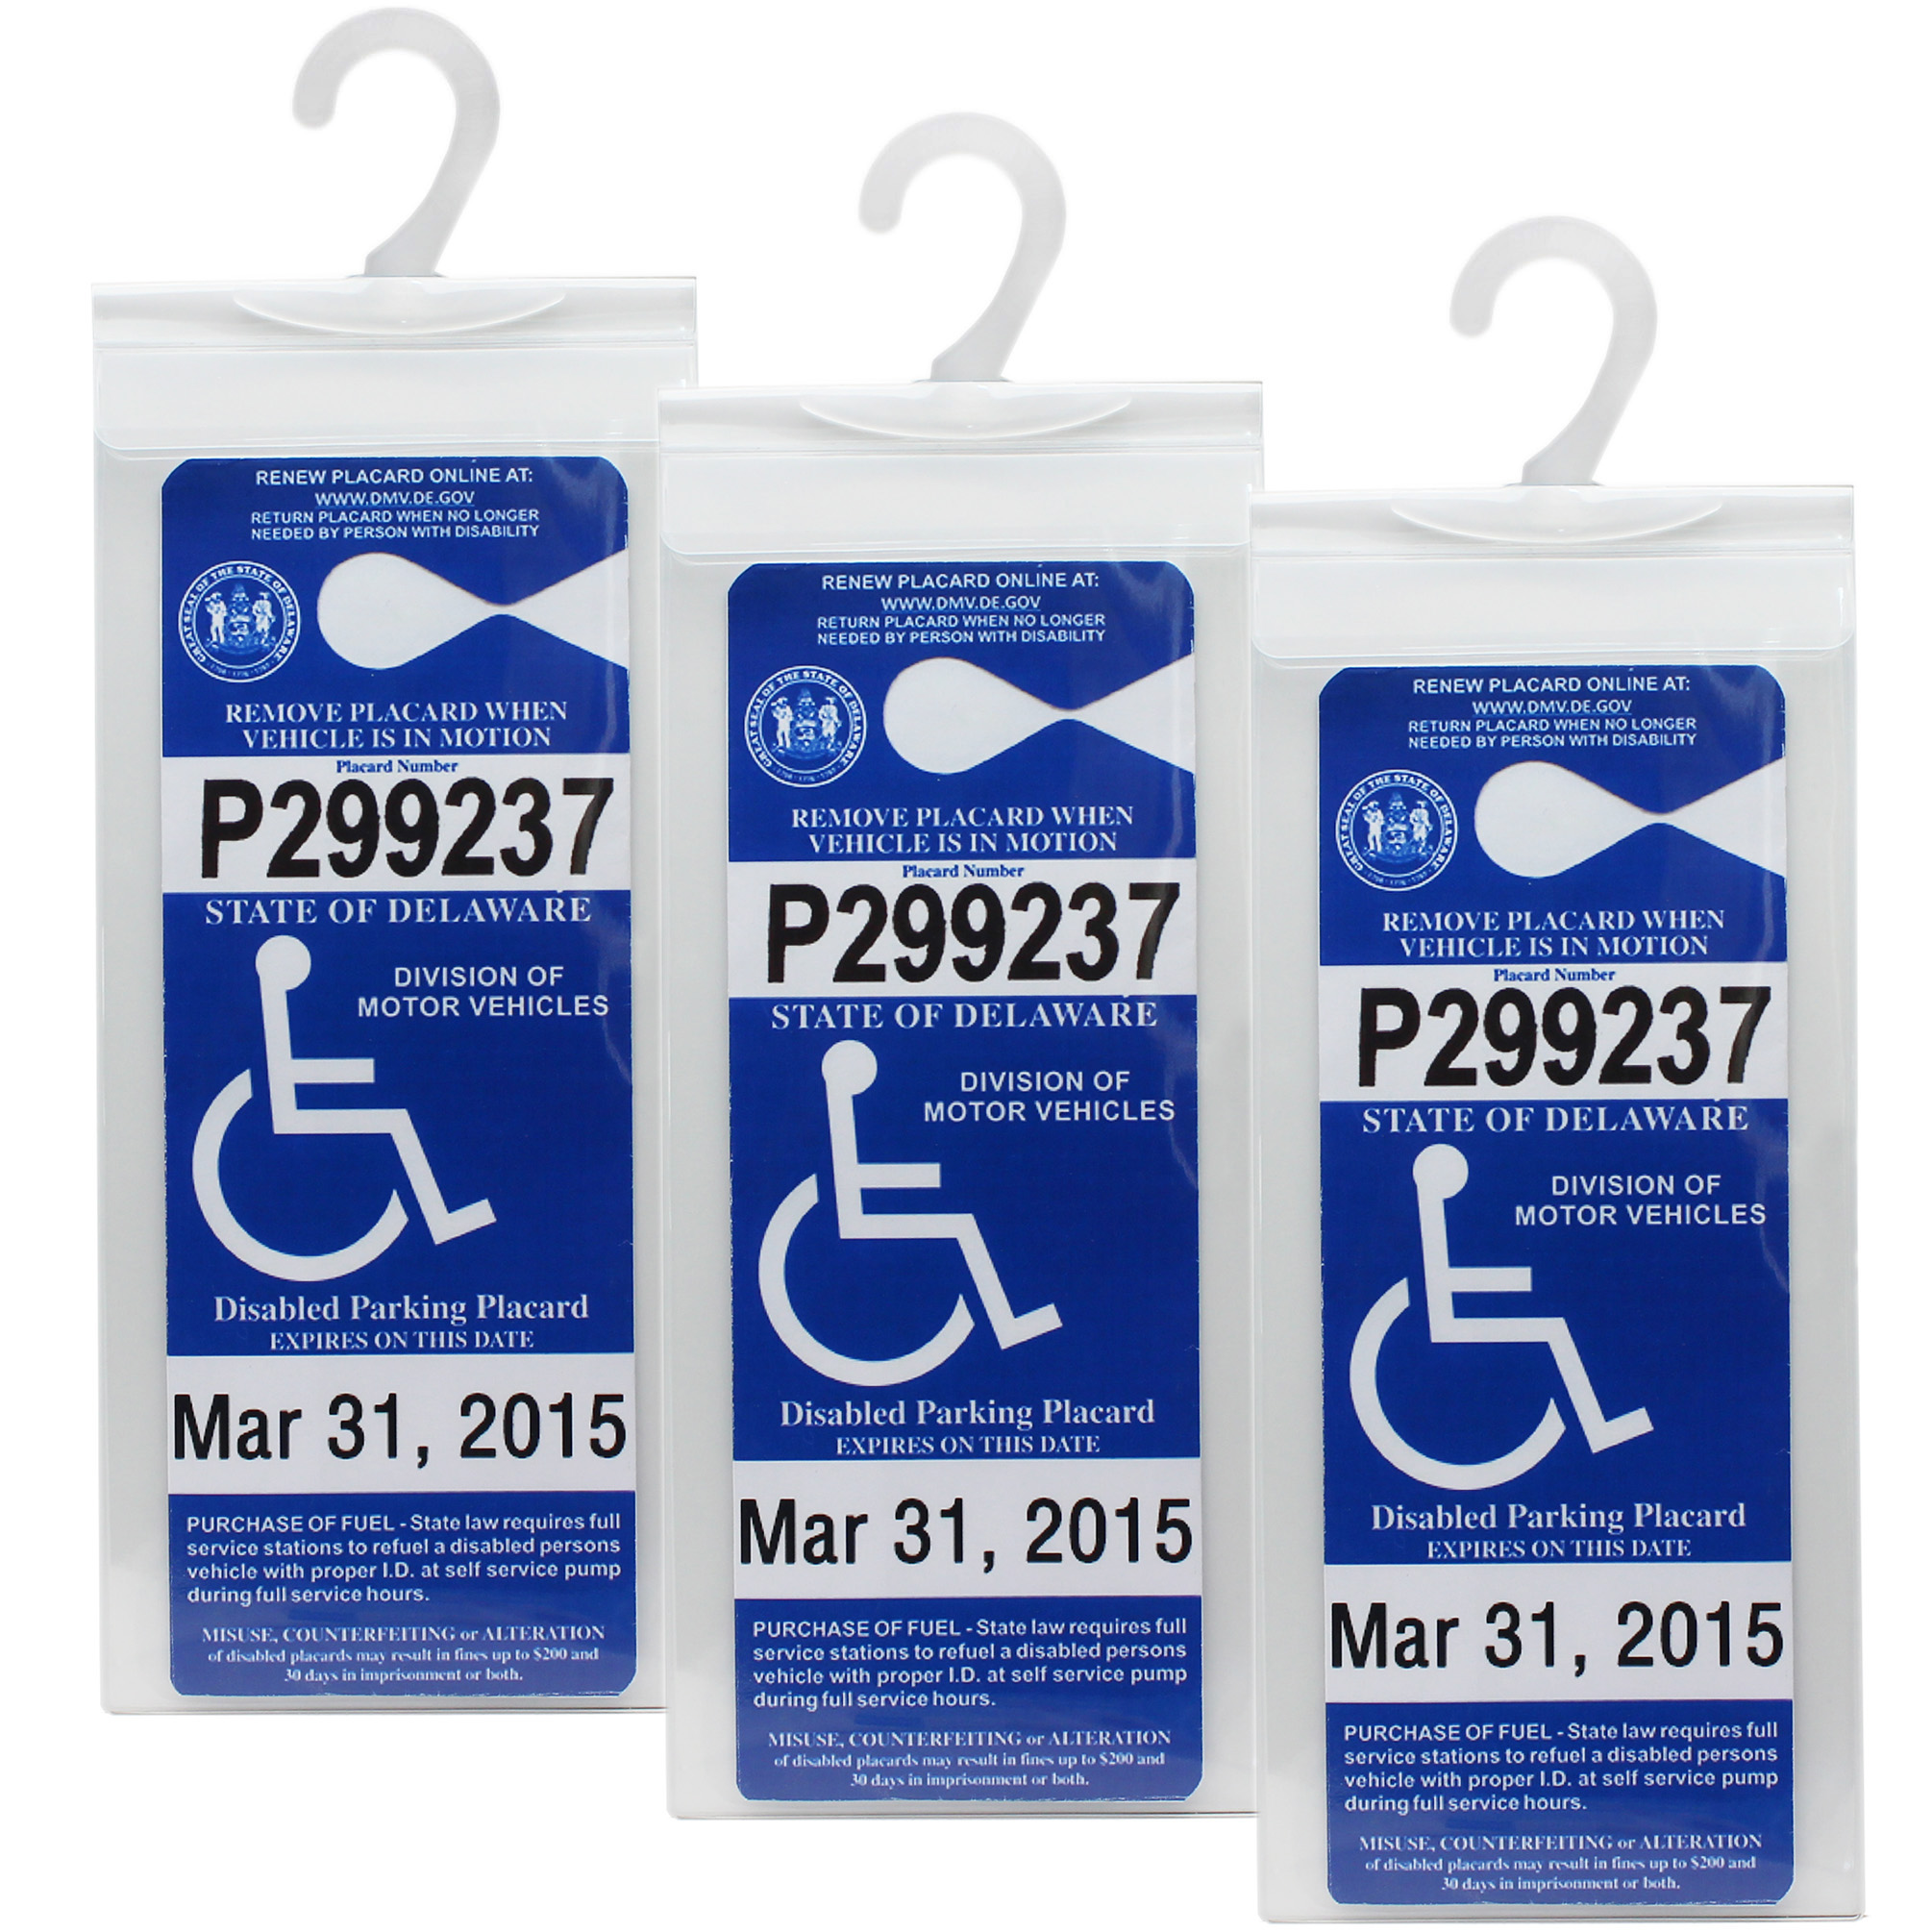 LotFancy 3 PCS Handicap Parking Permit Holder - Disabled Parking Placard Protector Sleeve with Large Hook - Plastic Mirror Tag Hanger